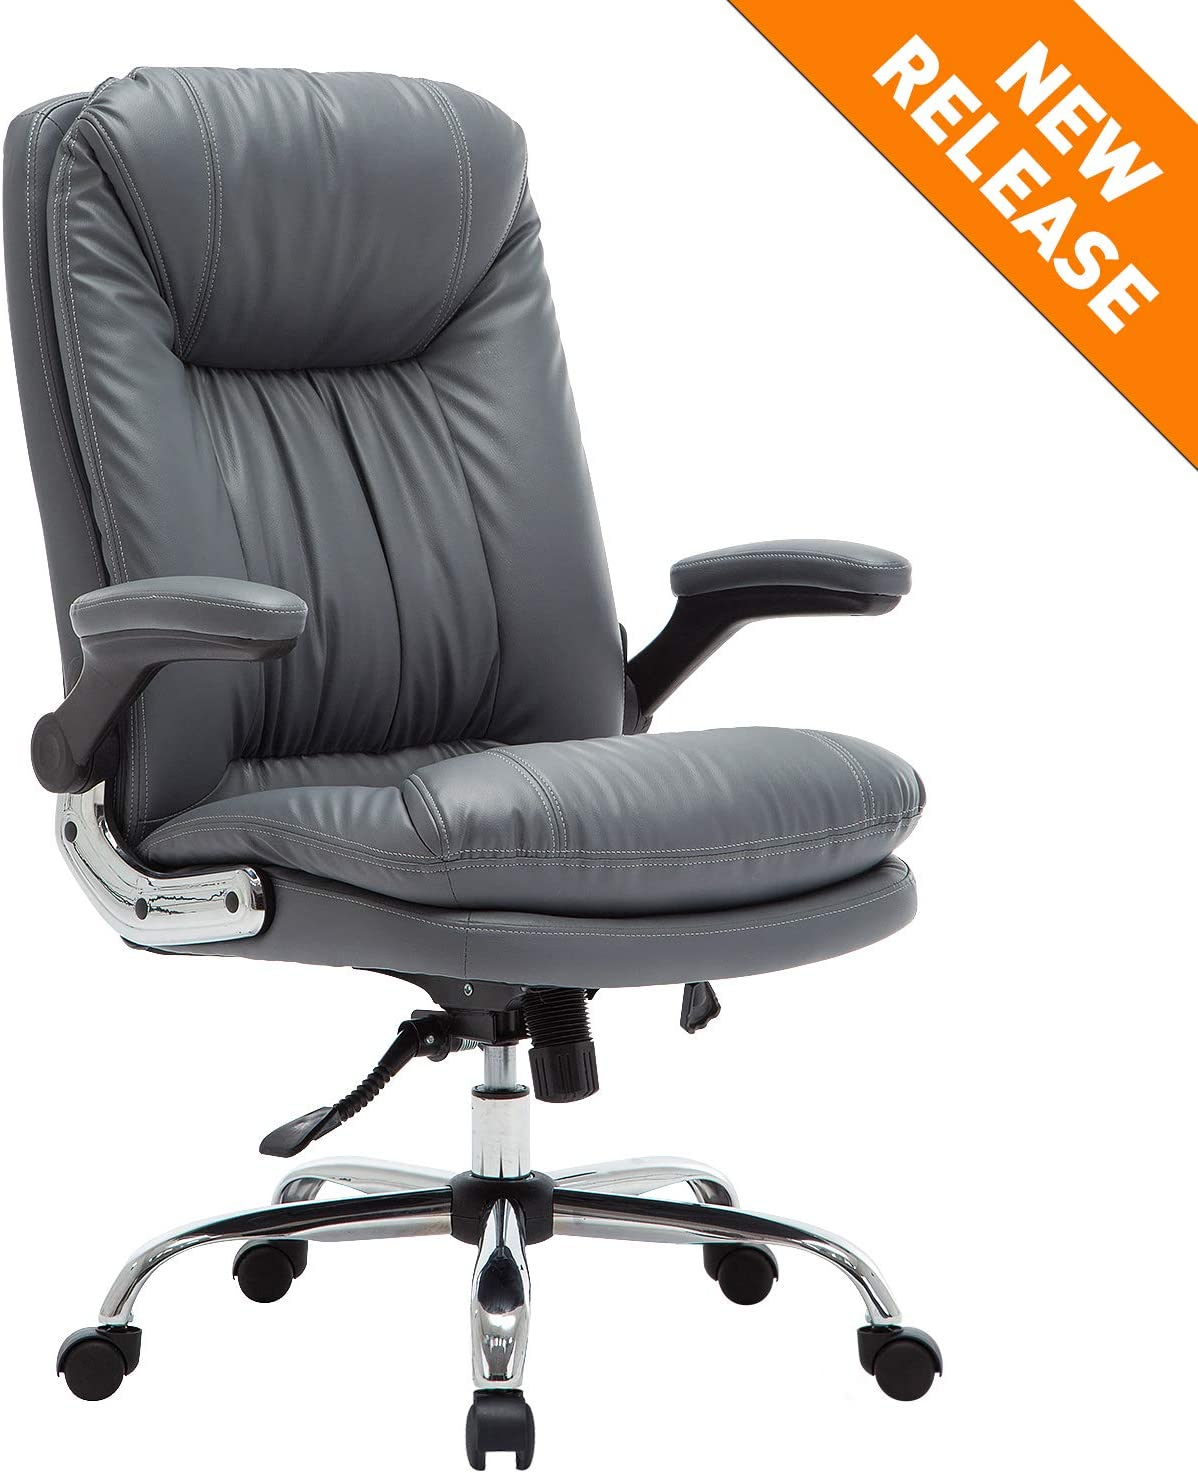 YAMASORO Ergonomic Office Chair with Flip-Up Arms and Comfy Headrest PU Leather High-Back Computer Desk Chair (Gray)